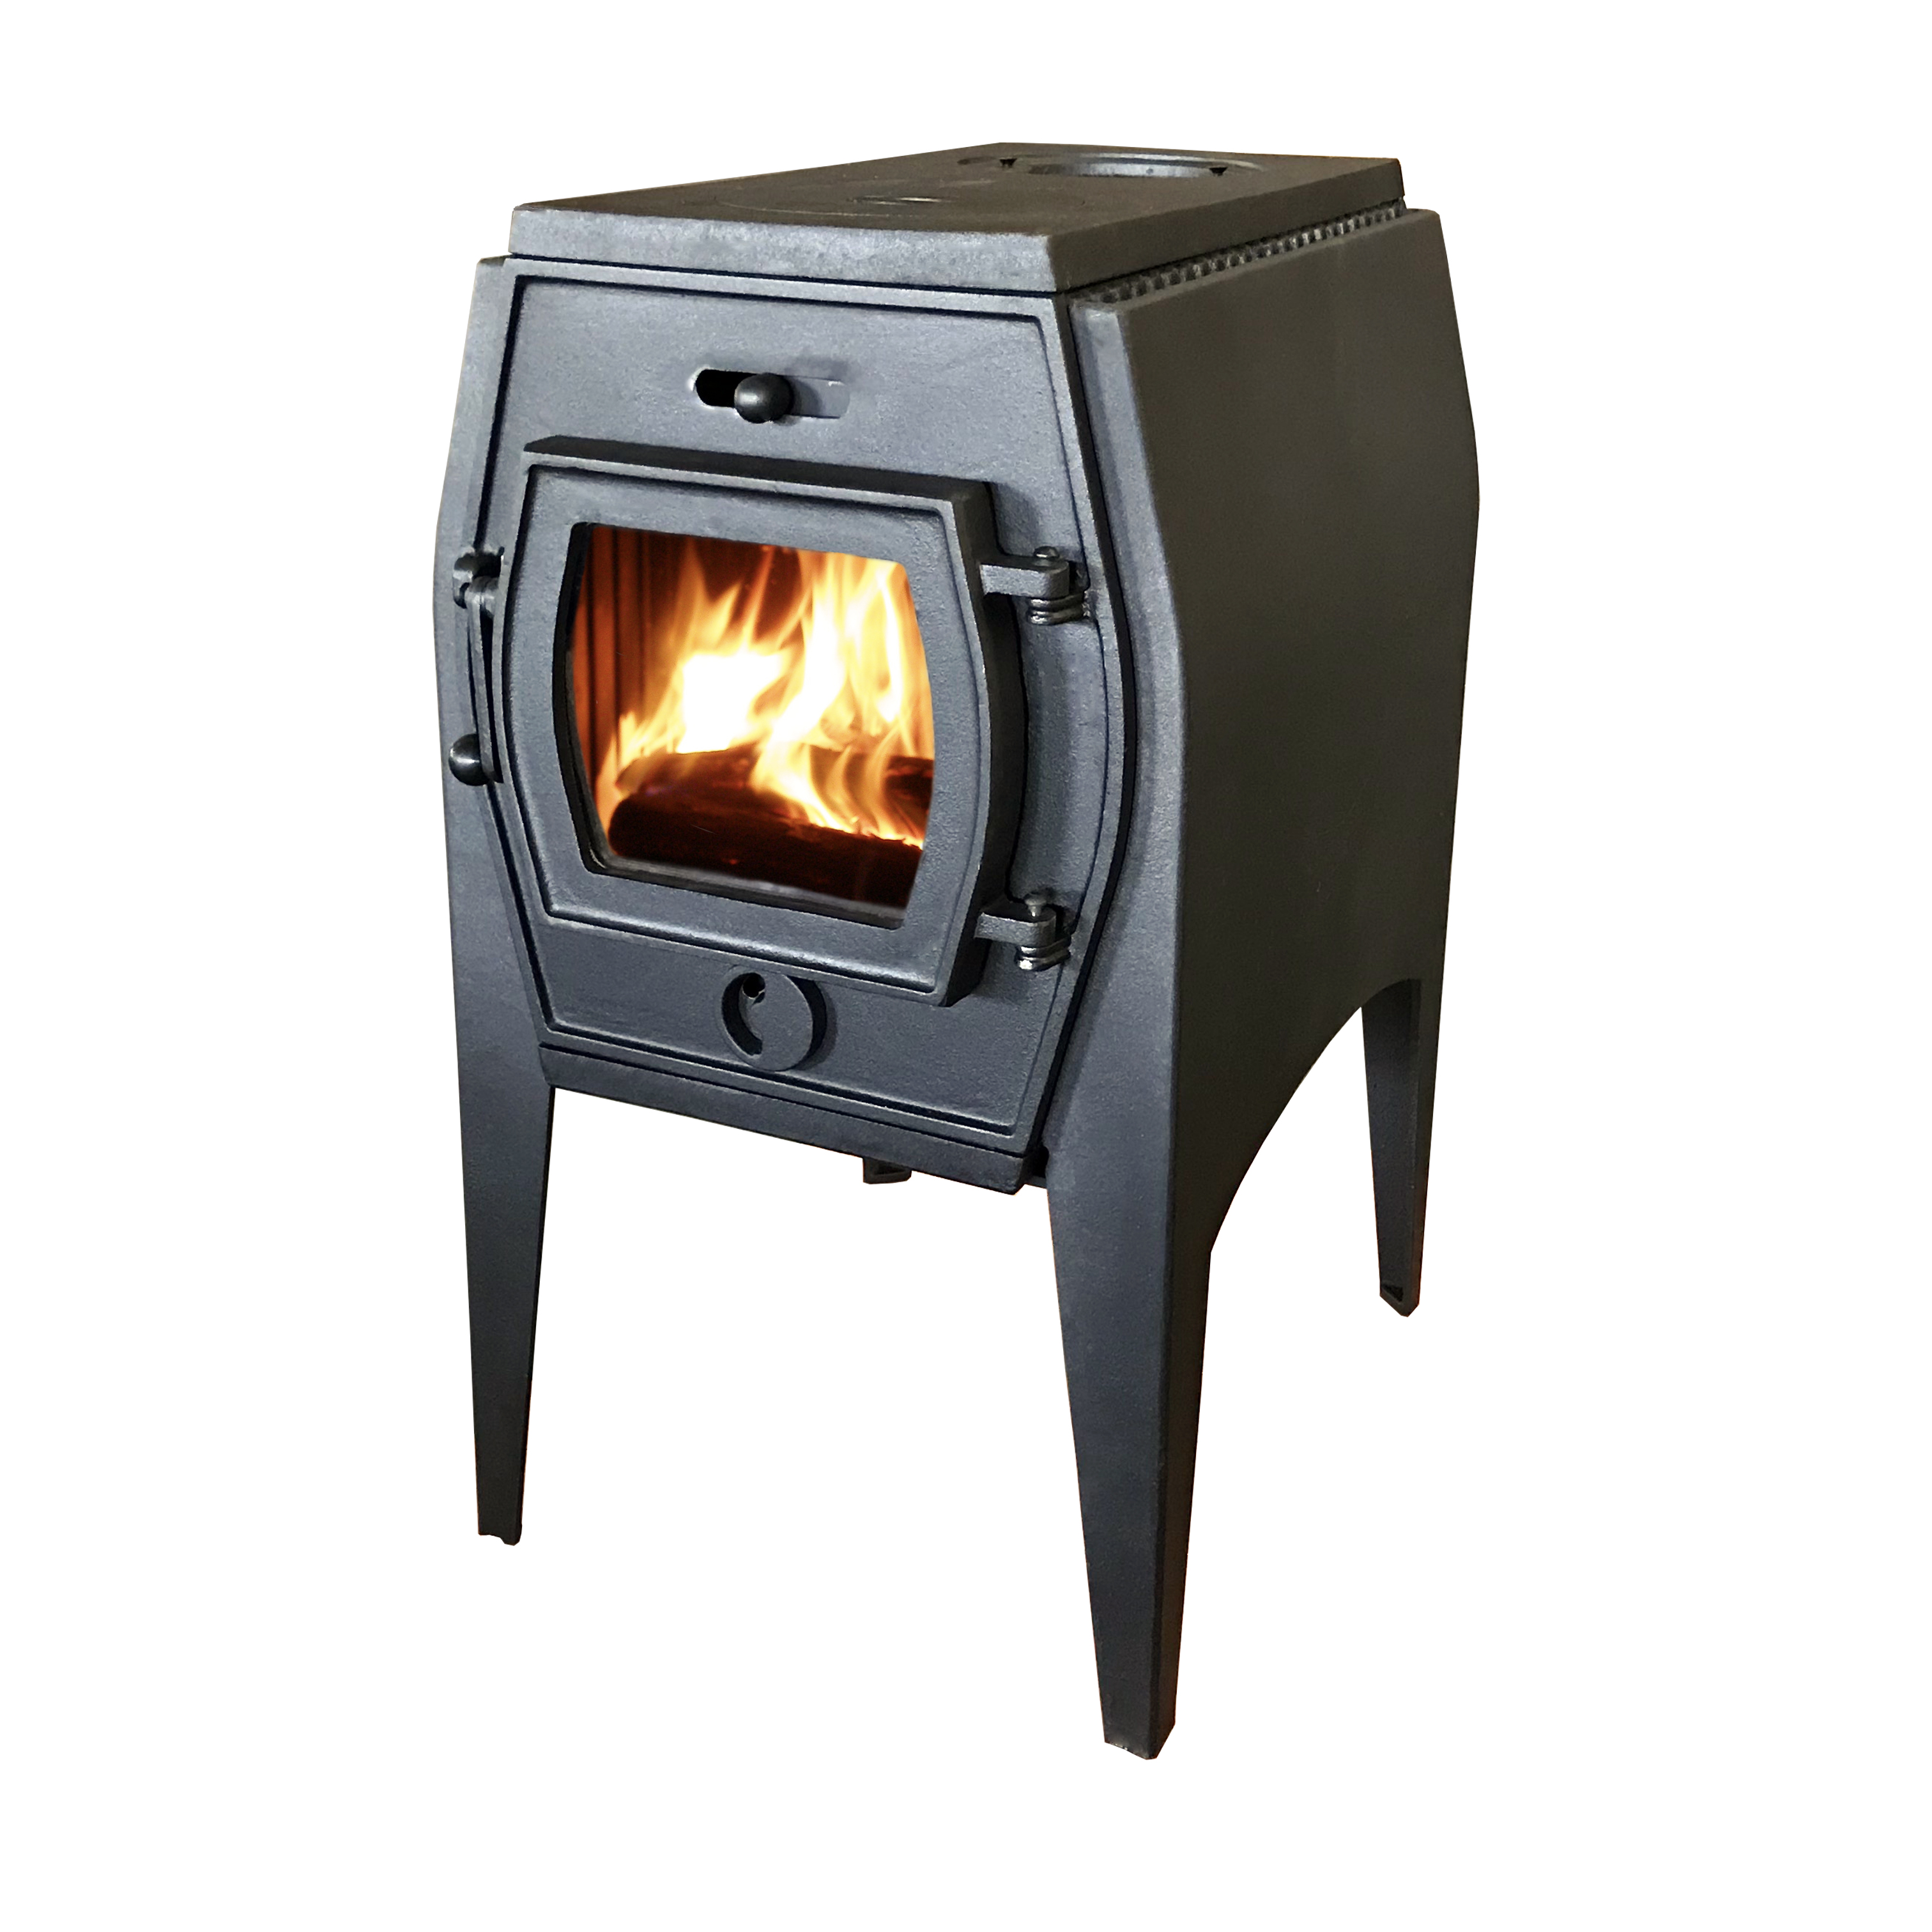 Hiflame HF706A cast iron mini wood stove with double shield for homely or outdoor